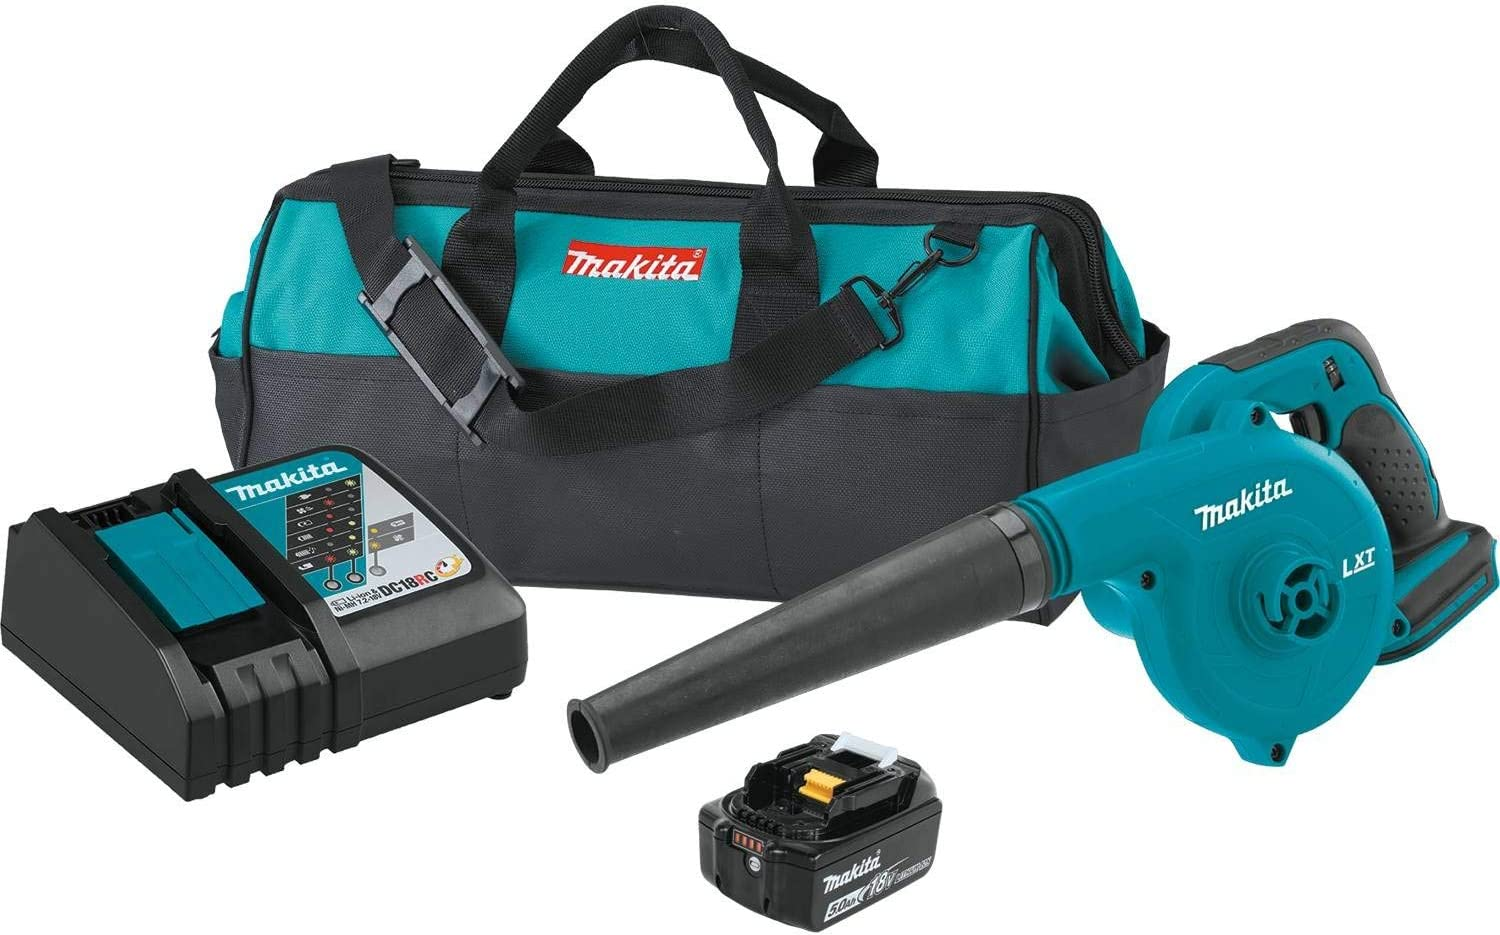 Makita DUB182T1 18V LXT Lithium-Ion Cordless Blower Kit 5.0Ah